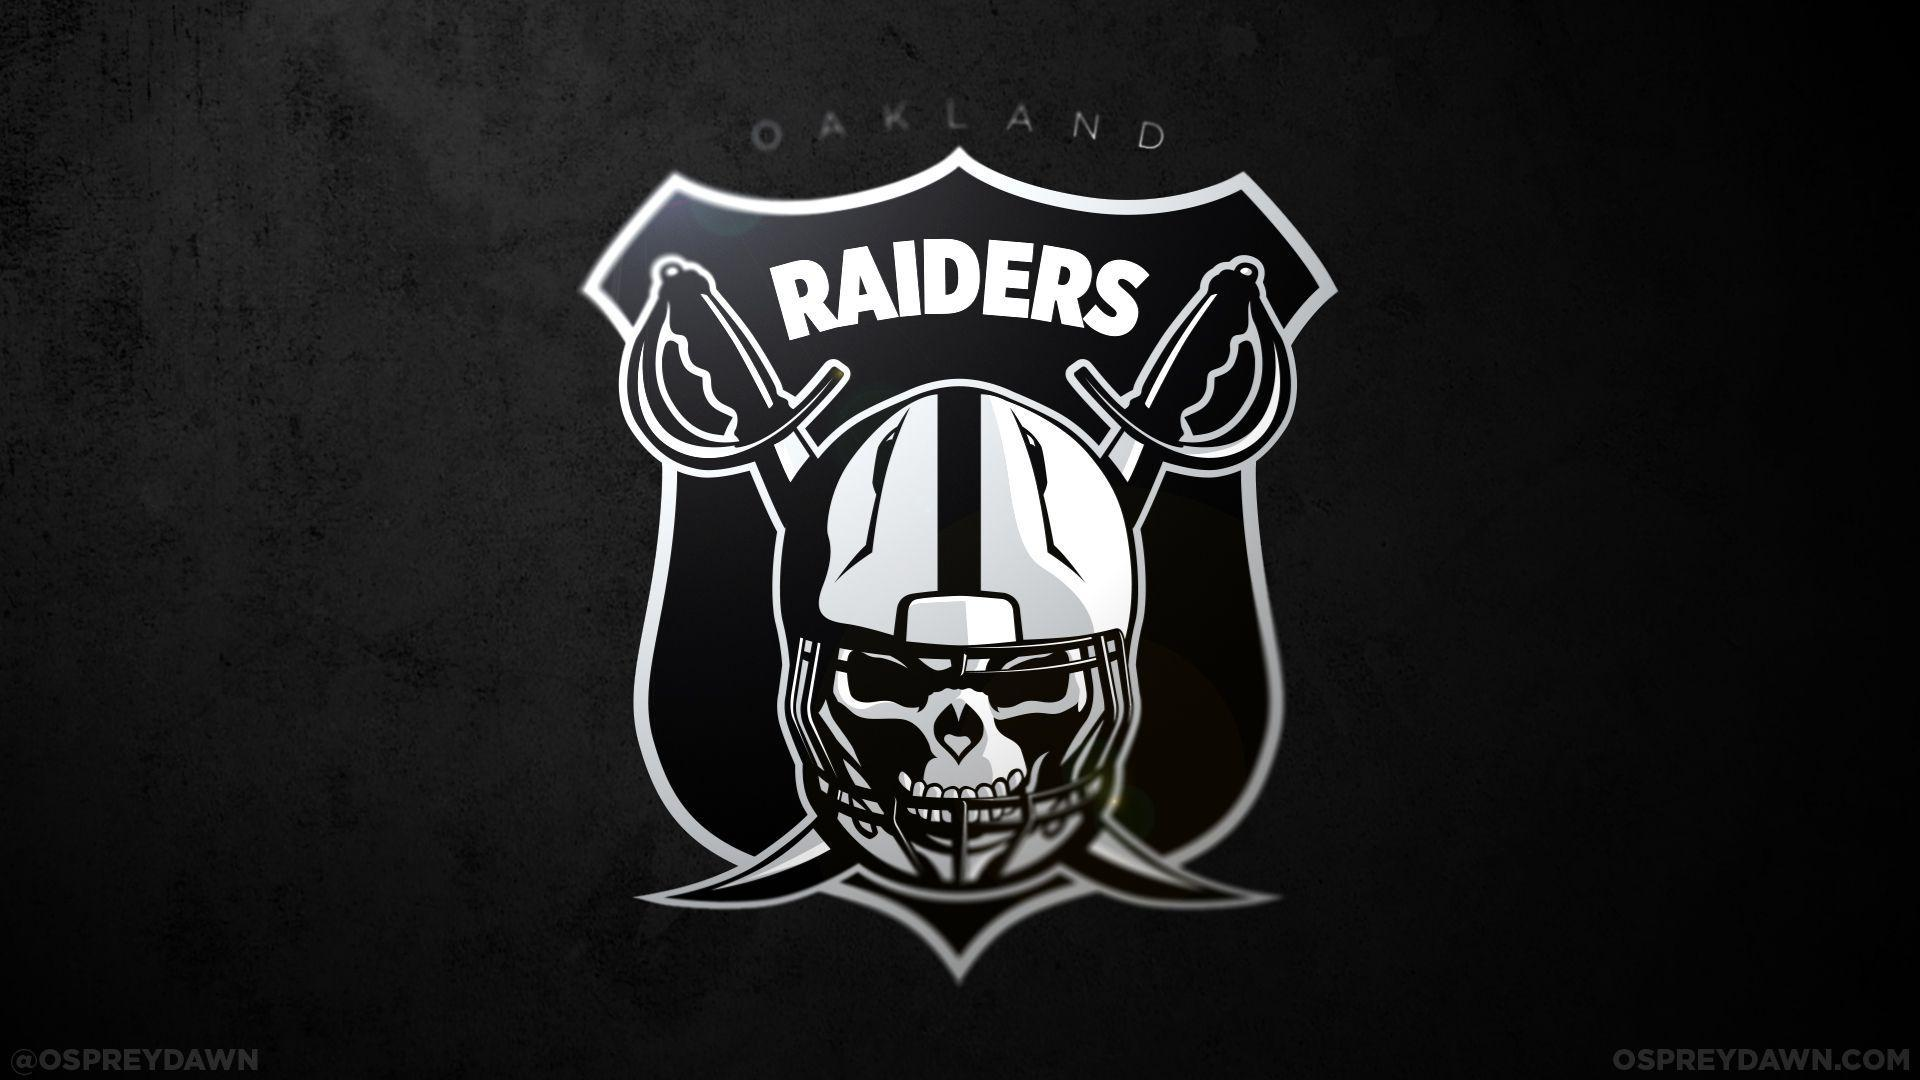 Oakland Raiders wallpaper | 1920x1080 | #73397